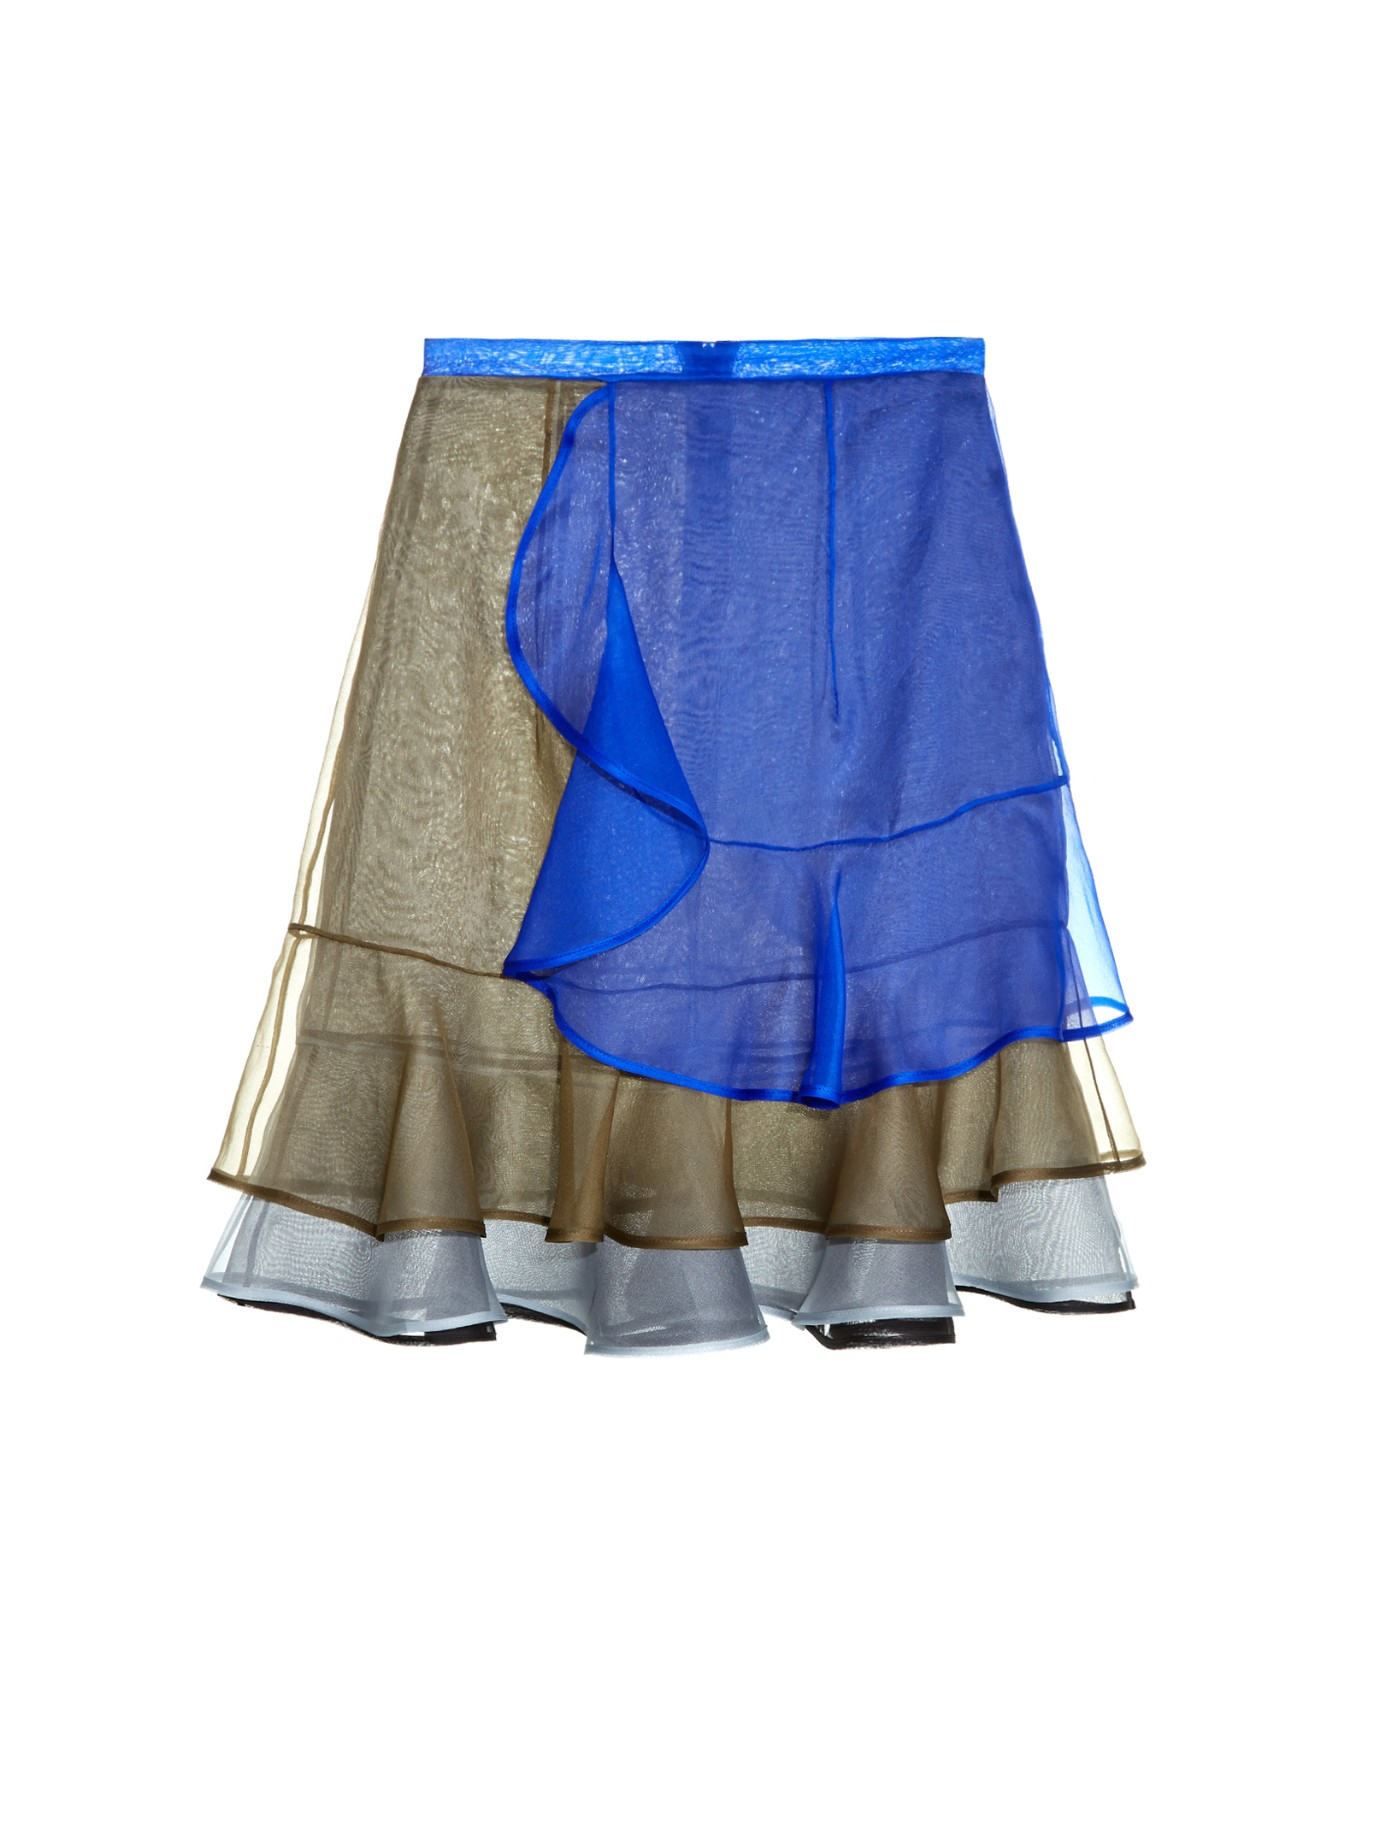 christopher layered ruffled organza skirt in blue